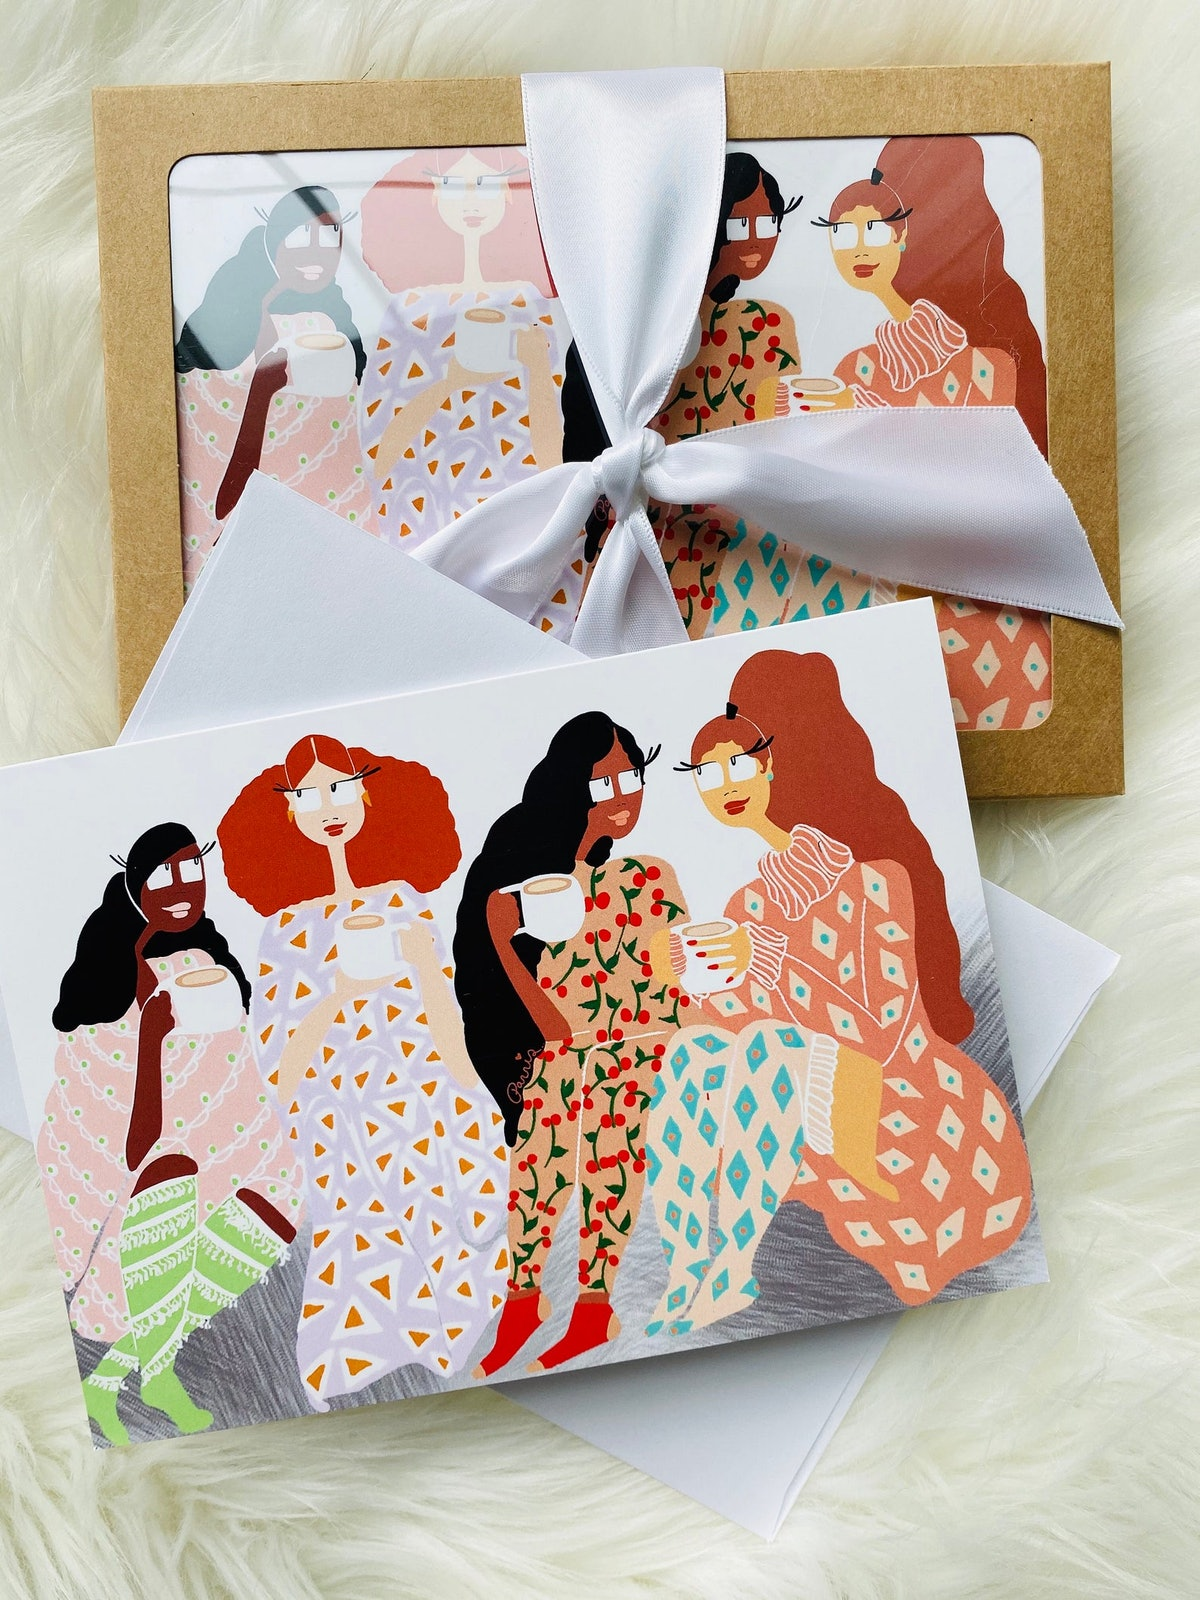 Cappuccino With Friends, Set of 5 Cards